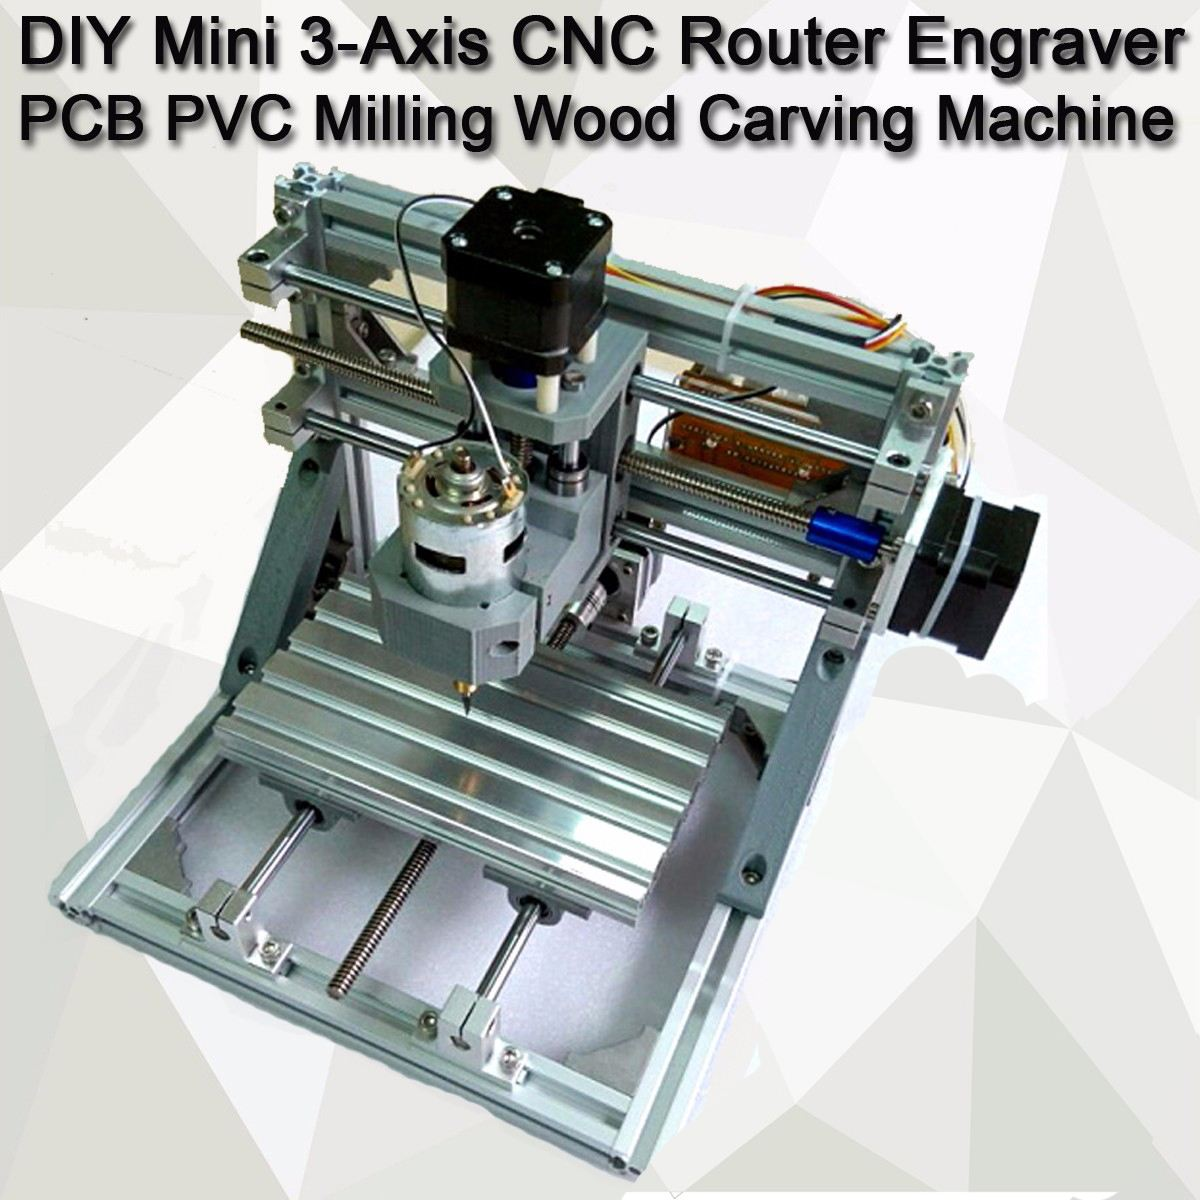 CNC 1610 GRBL Control Diy mini 3 Axis Router CNC Machine Engraver PCB PVC Milling Wood Carving Machine working area 16x10.5x3cm grbl control diy 1610 mini cnc machine wood carving machine 3 axis pcb milling machine wood router arduino cnc router dhl ship